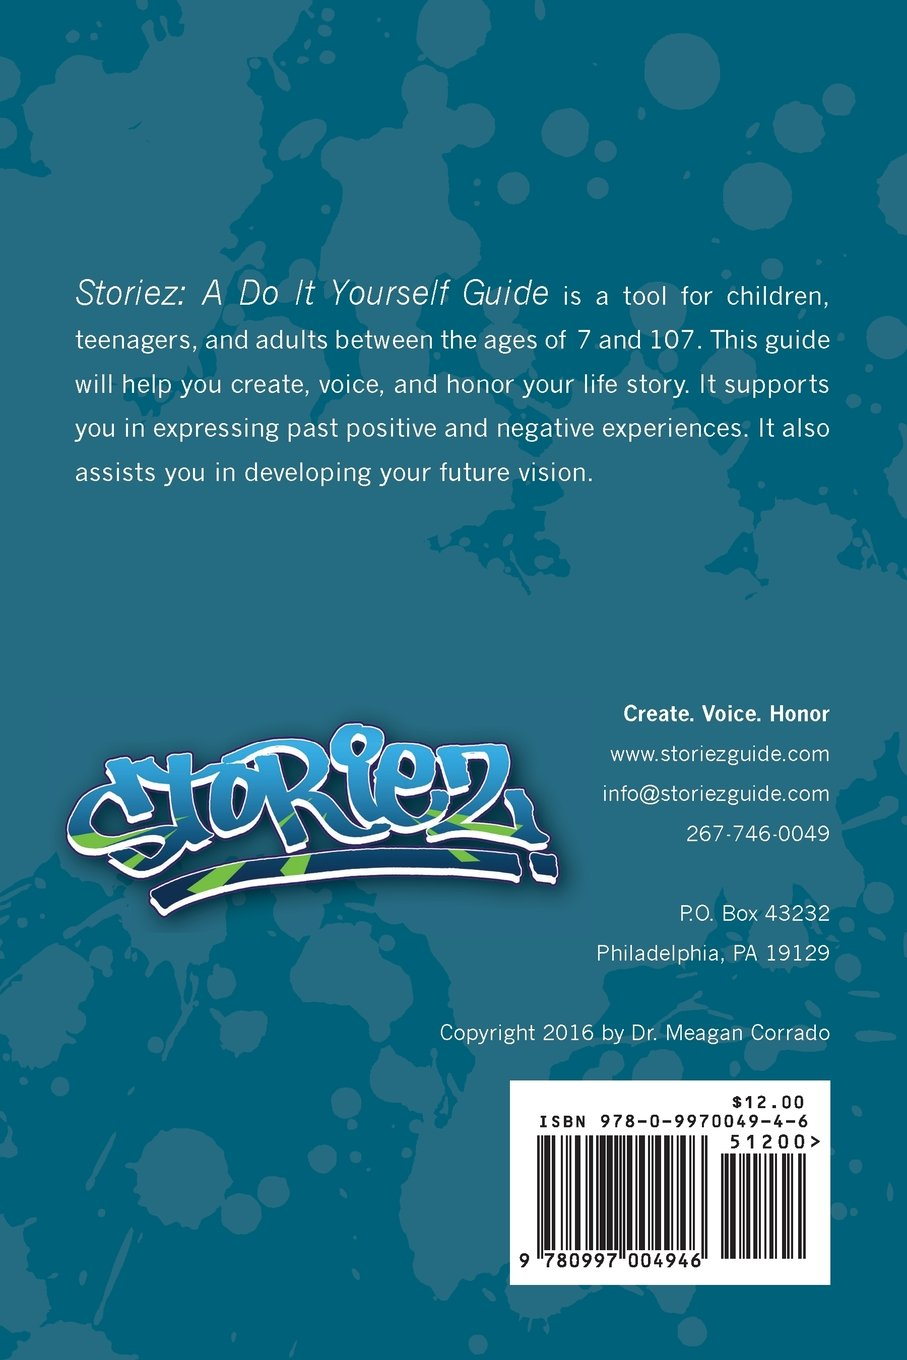 Storiez A Do It Yourself Guide Meagan Corrado 9780997004946 Learn More At Help Com Books